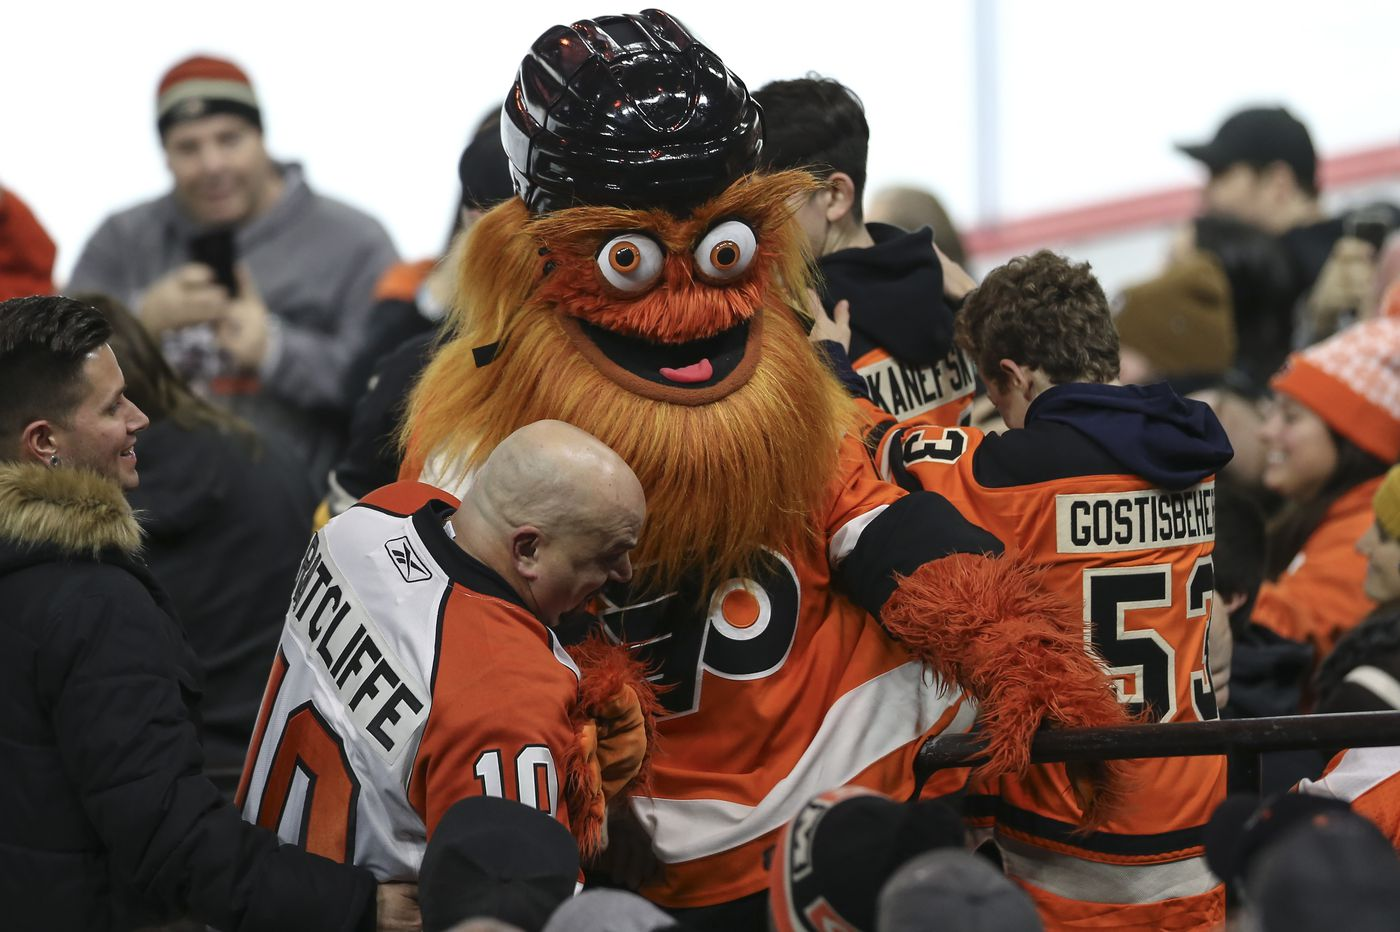 Watch: Gritty gets Netflix's 'Queer Eye' treatment